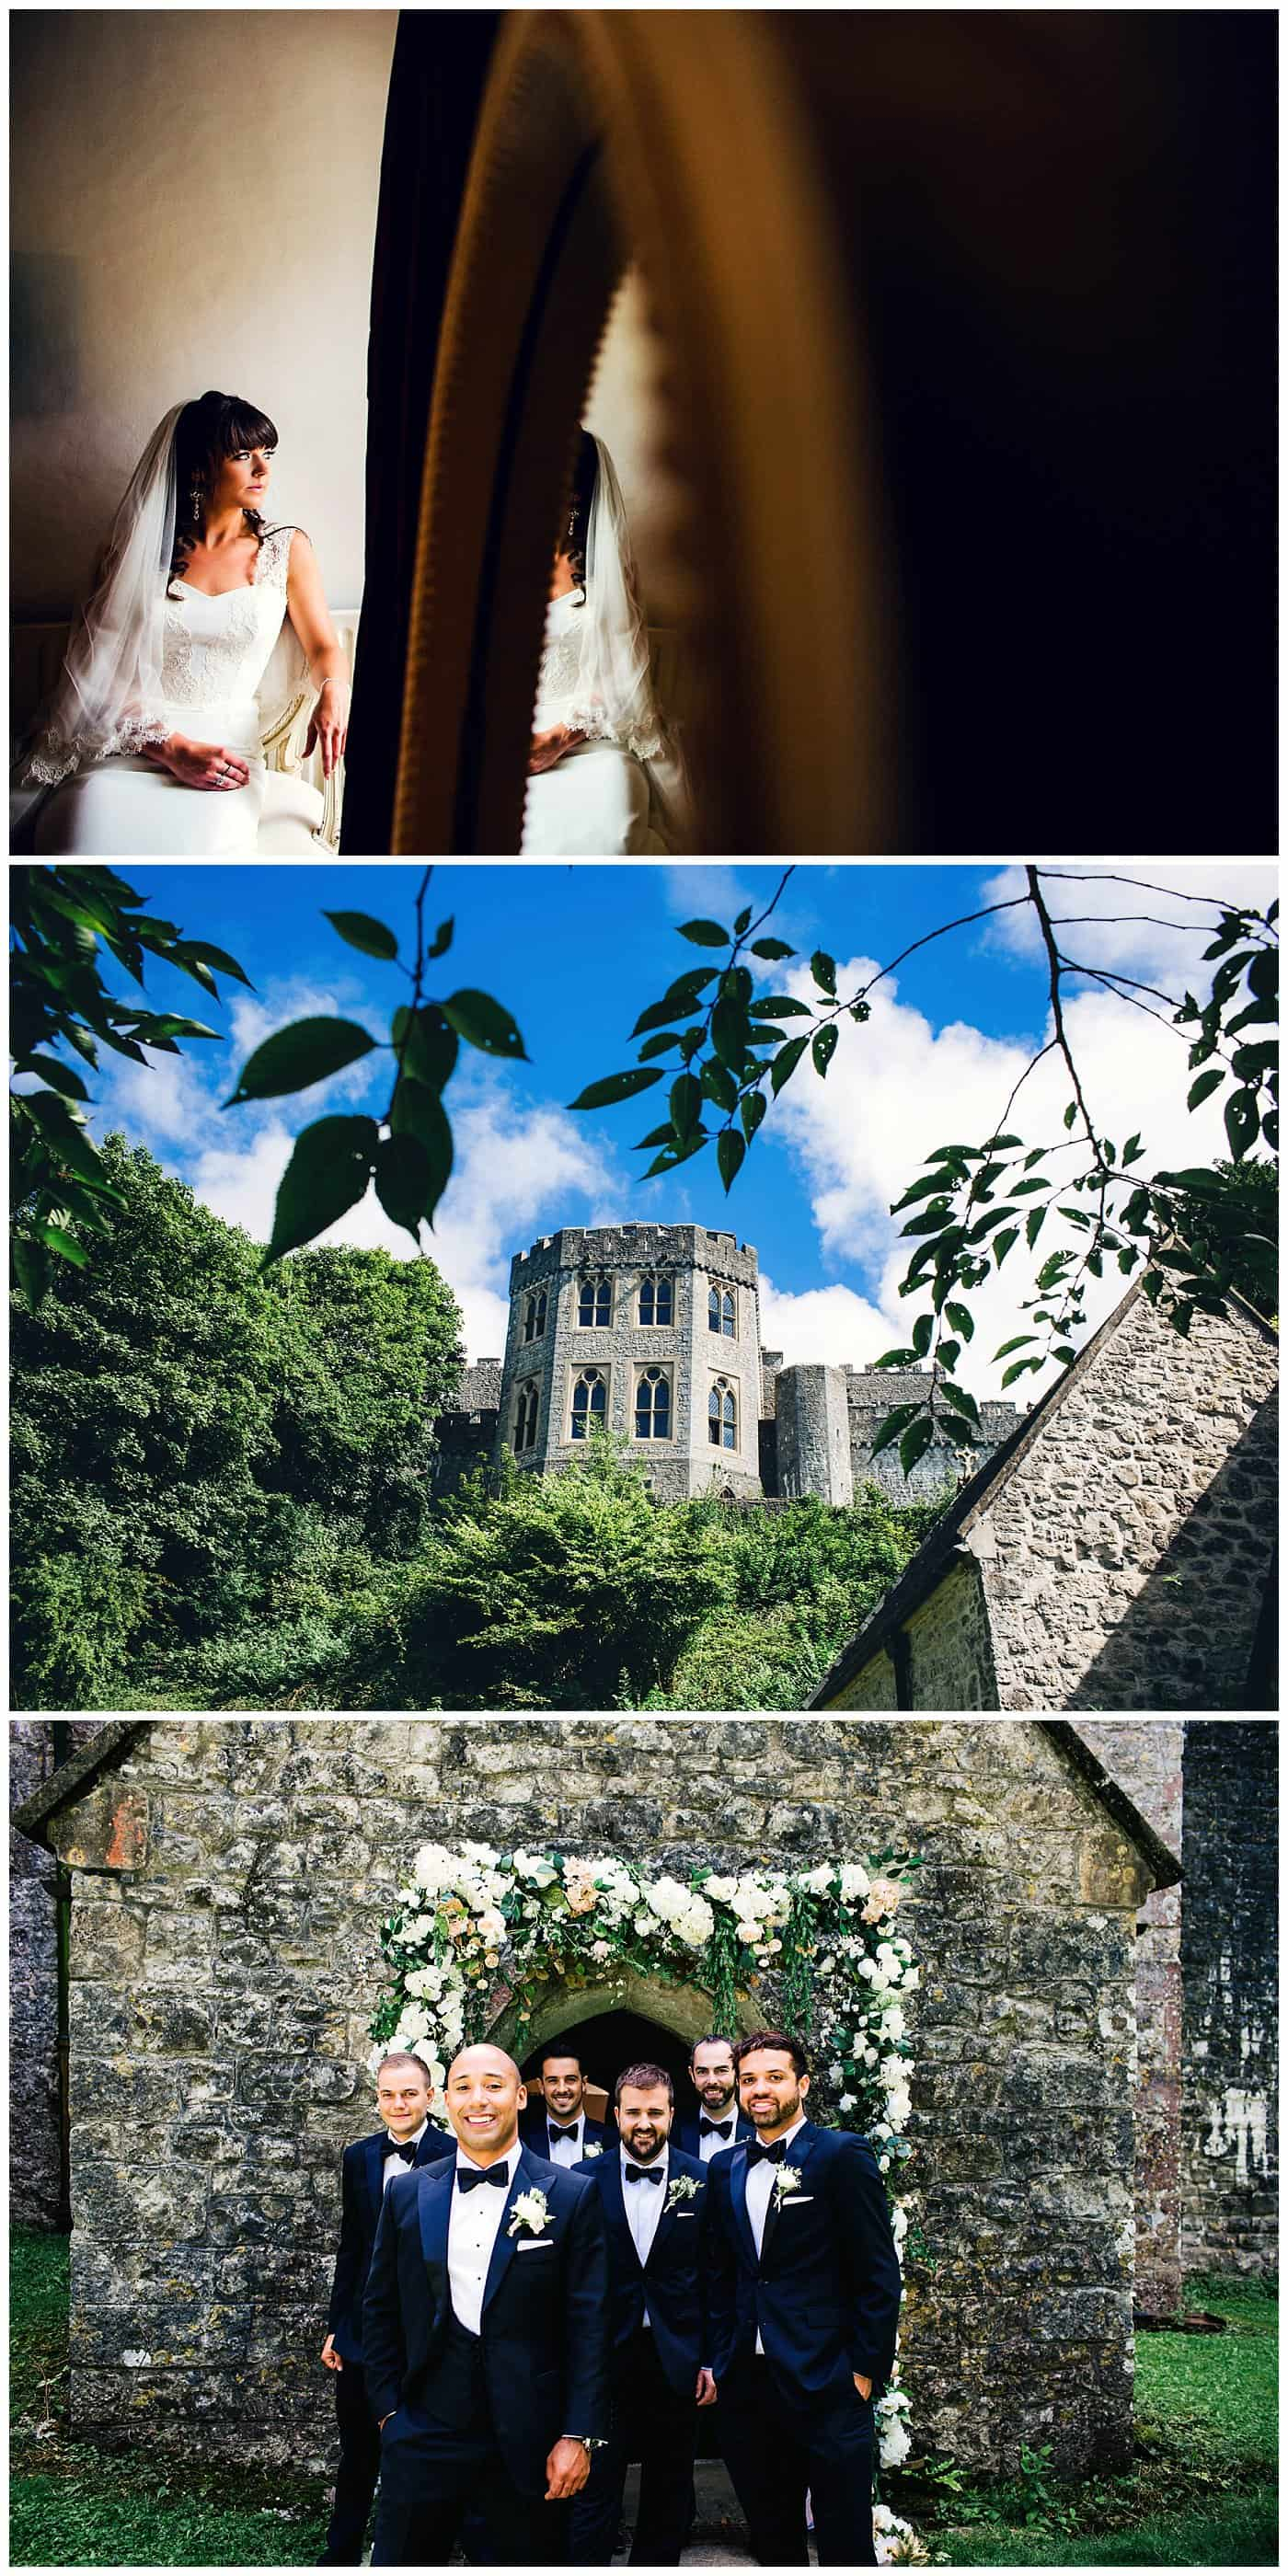 ST DONAT'S CASTLE WEDDING photos